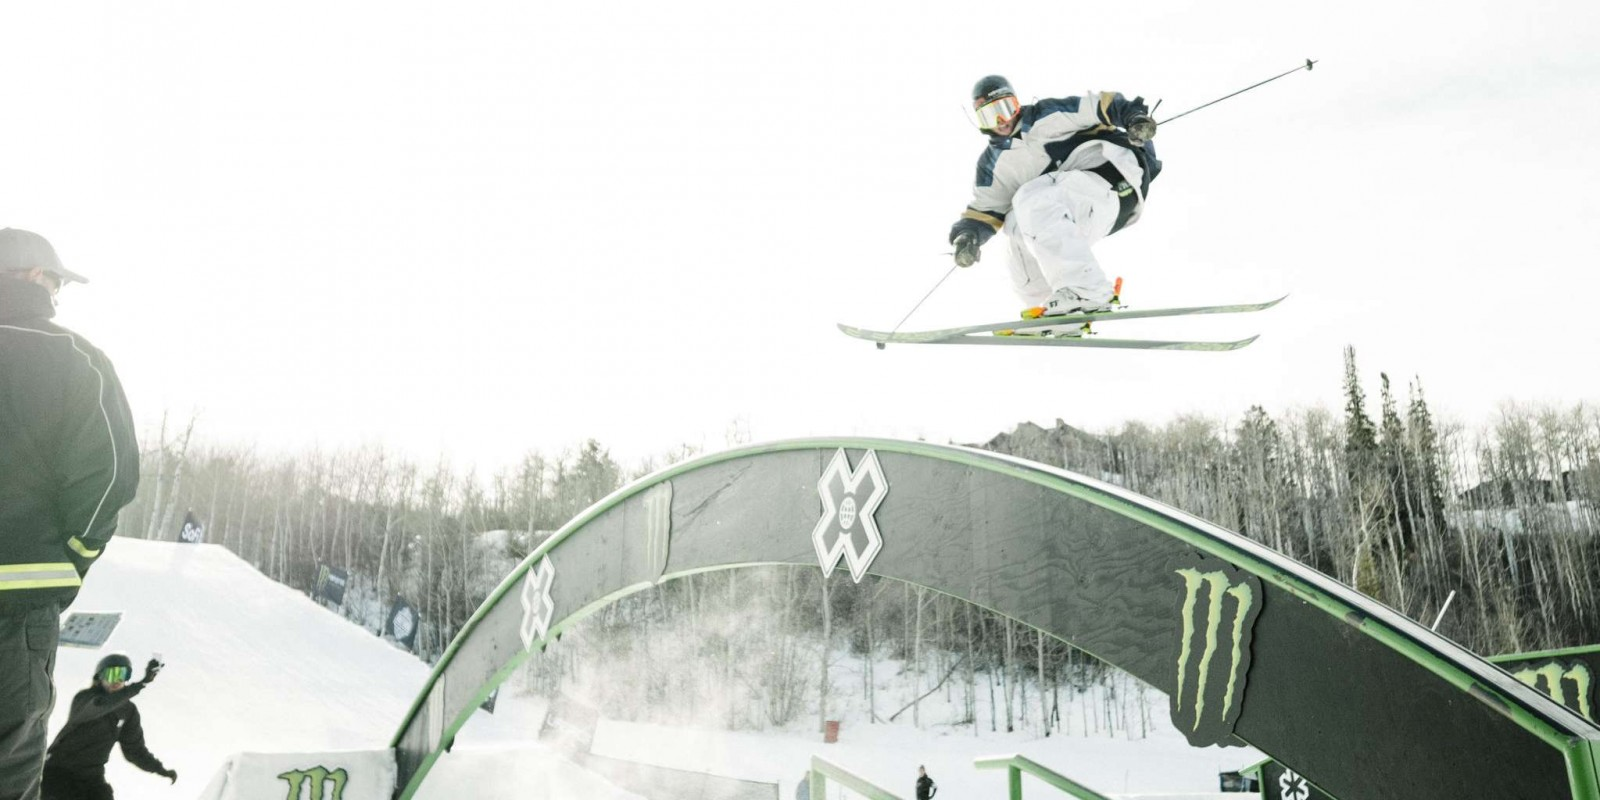 Action shots from the mens slope style